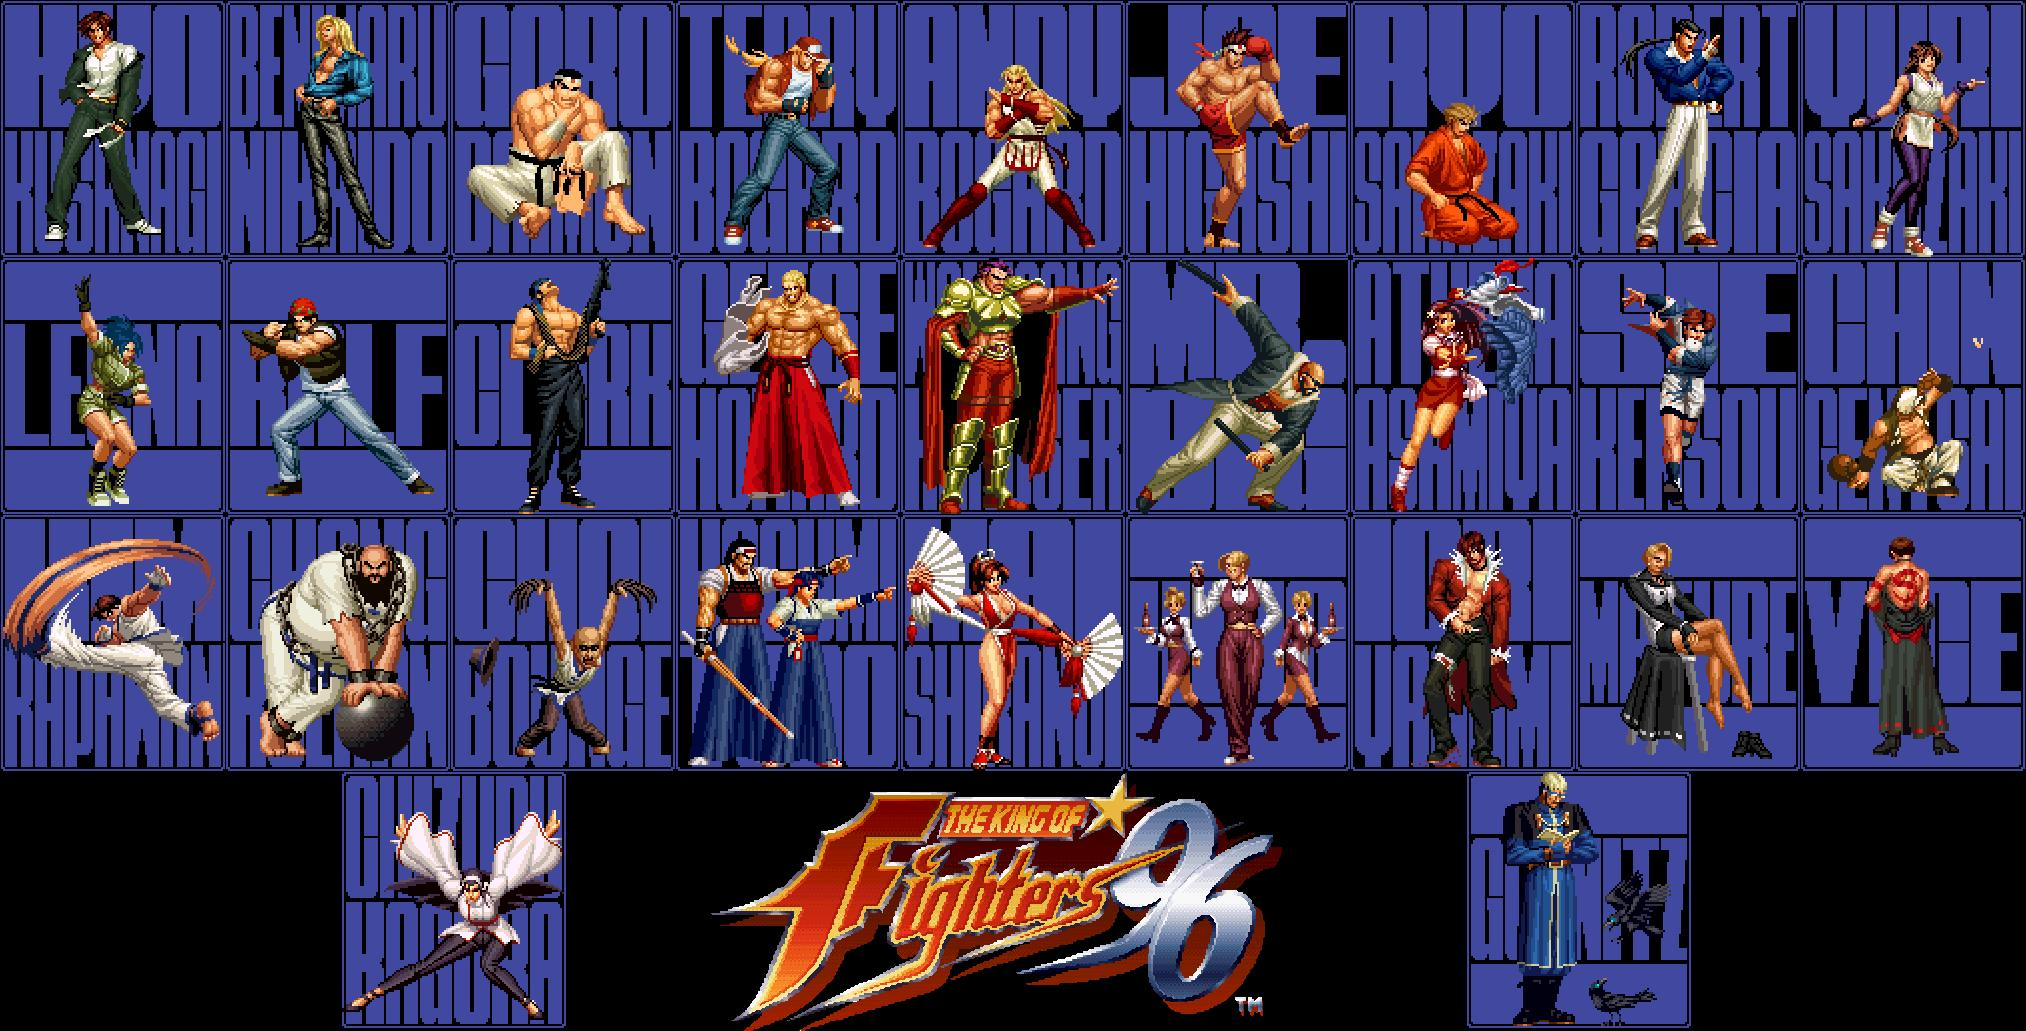 THE KING OF FIGHTERS 96 BLUE by Squall-Lawliet